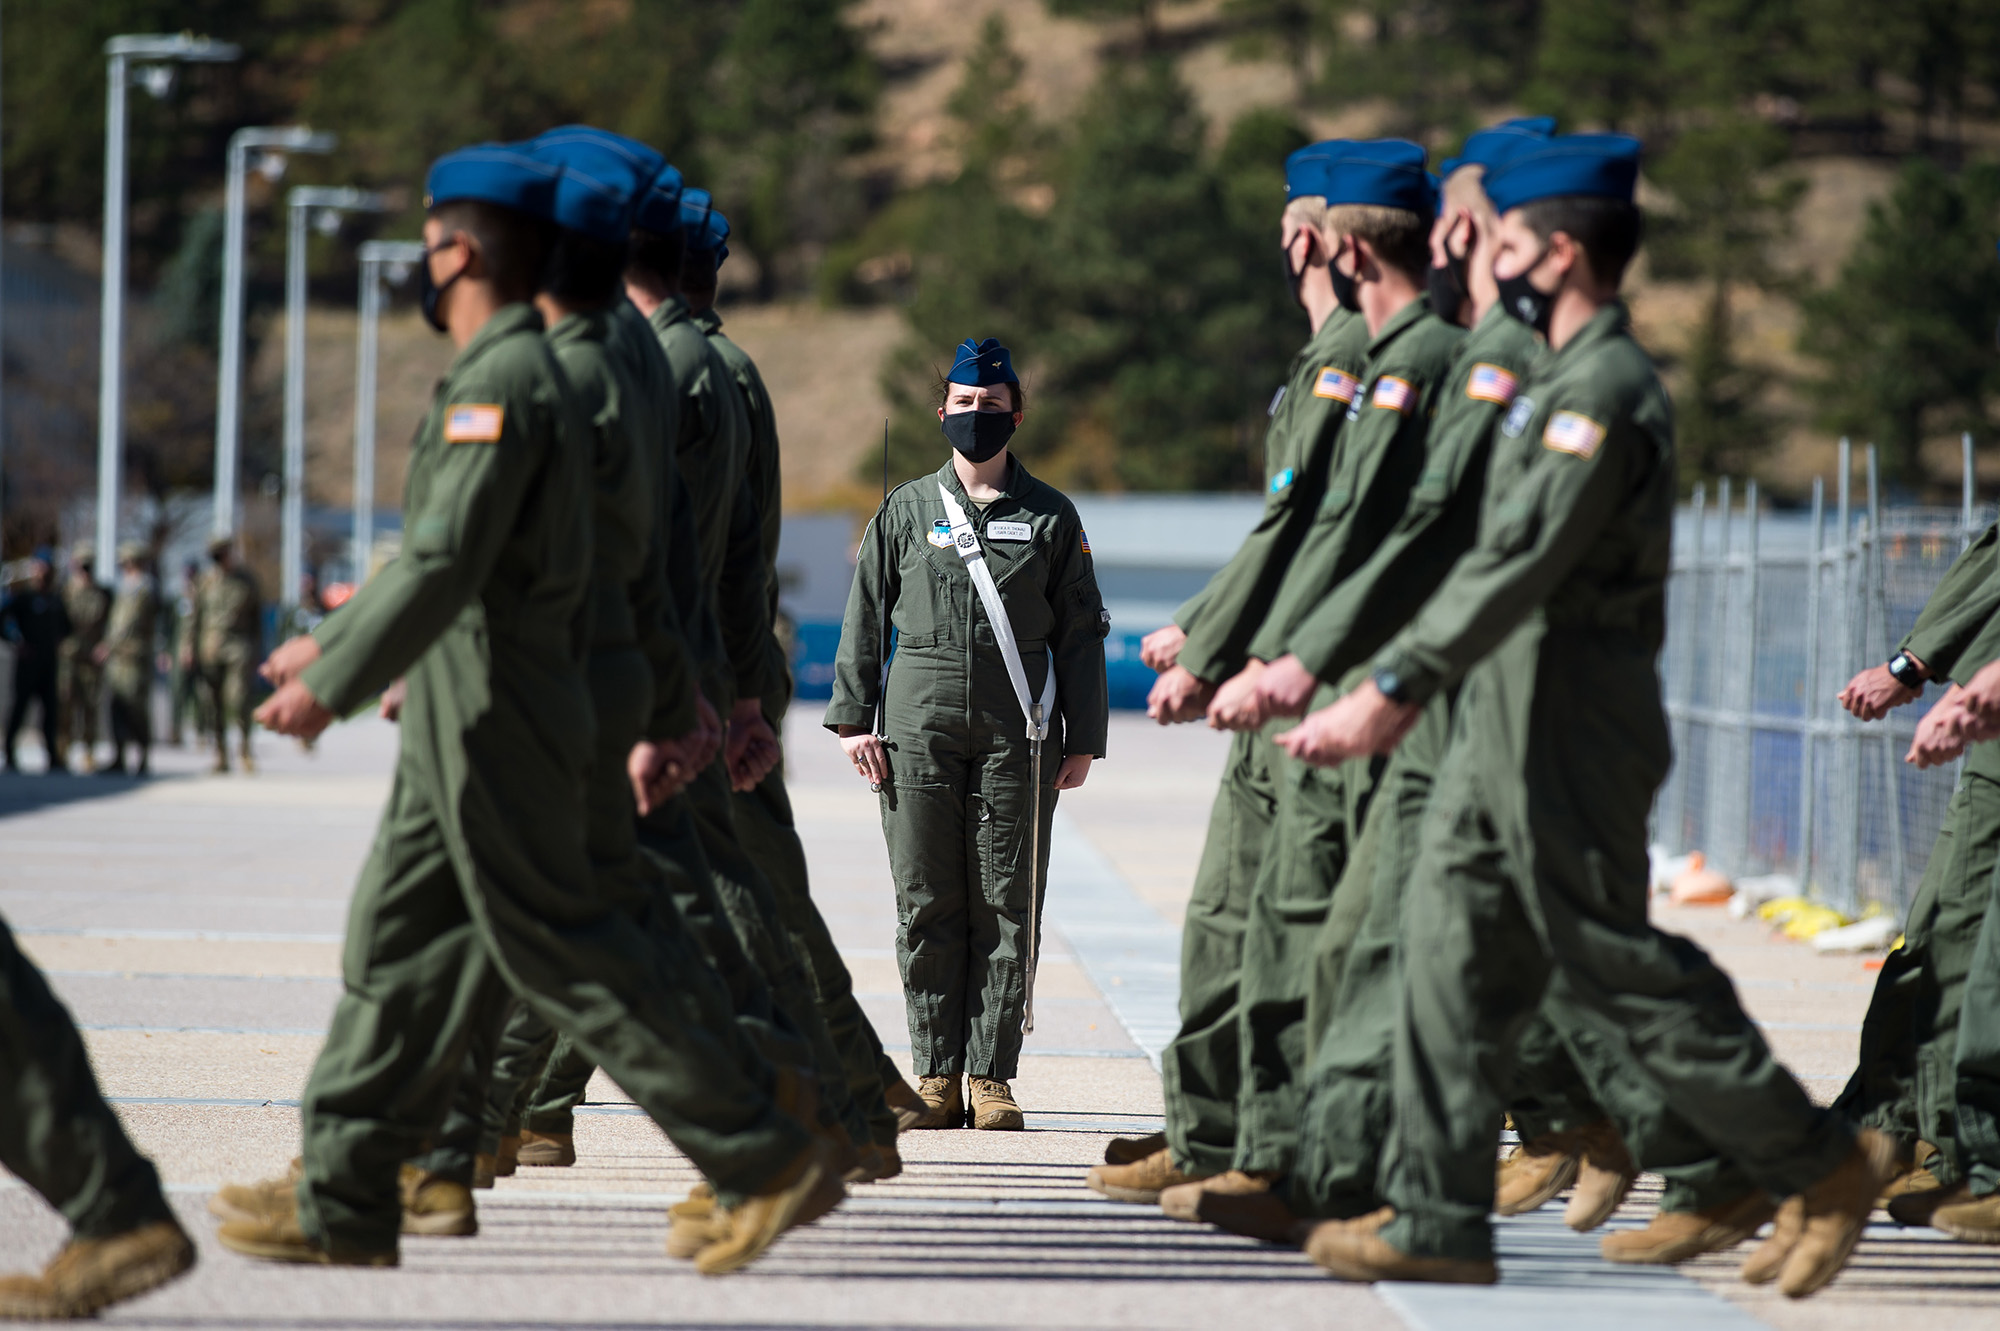 Air Force cadets march during noon meal formation Oct. 9, 2020, on the Academy's Terrazzo at the U.S. Air Force Academy in Colorado Springs, Colo. (Trevor Cokley/Air Force)